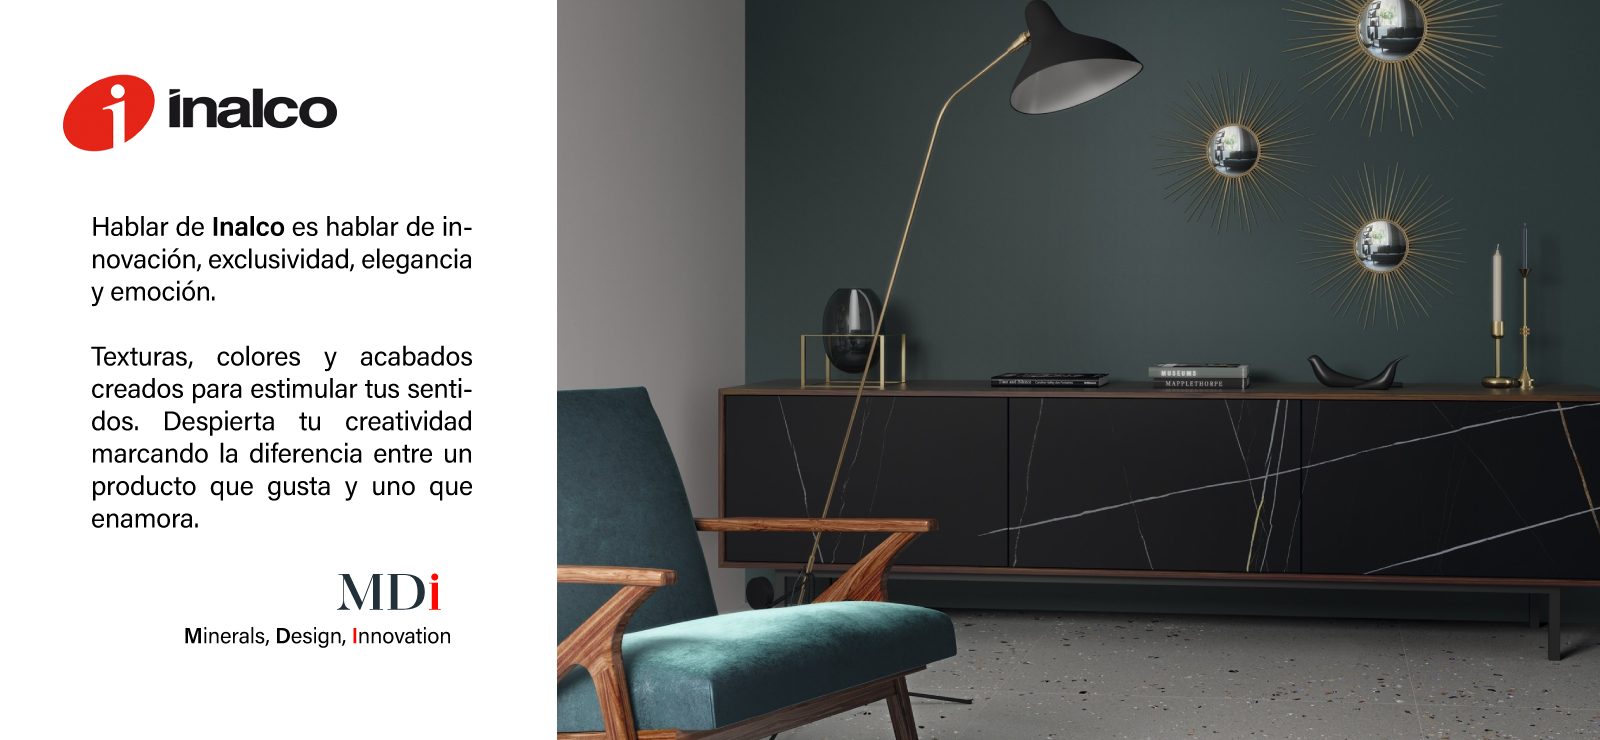 INALCO-PAGE-A